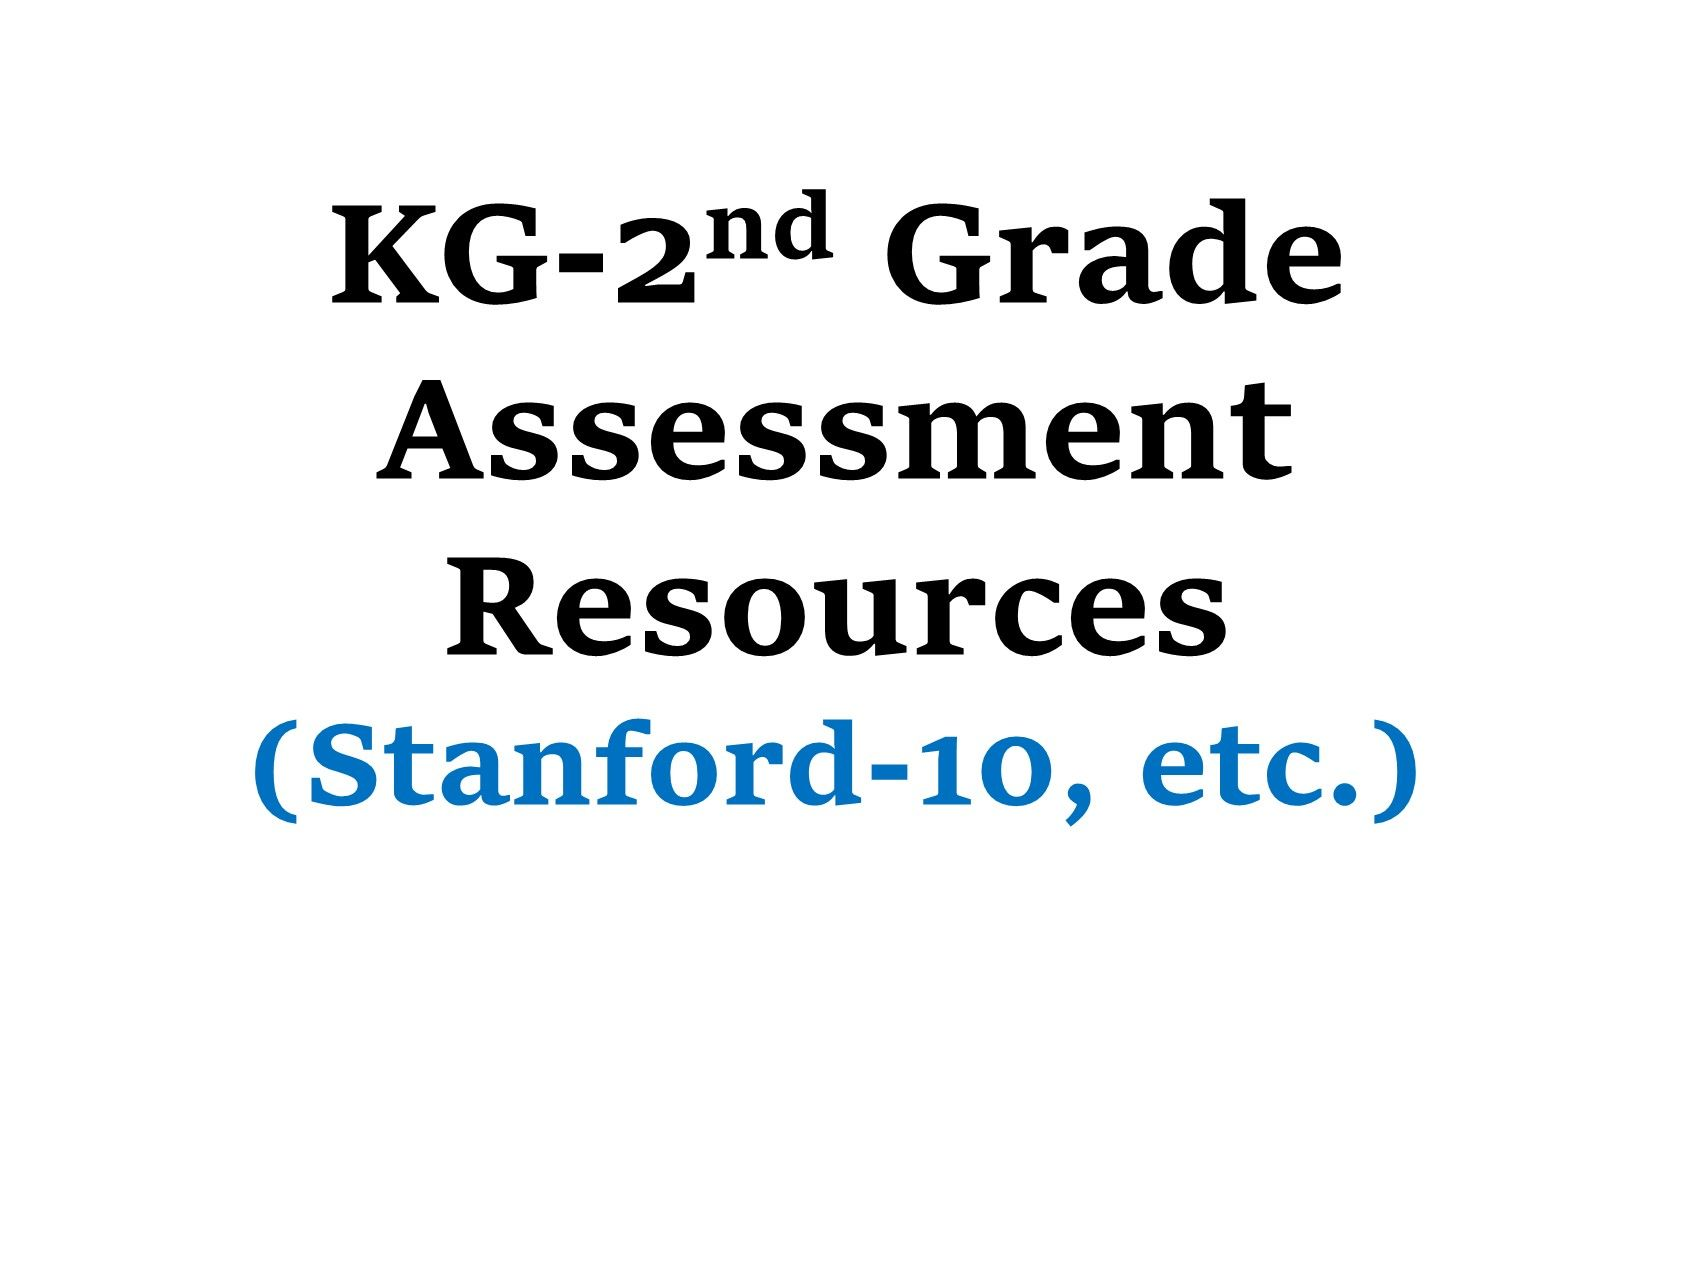 Click here to download test/assessment resources such as